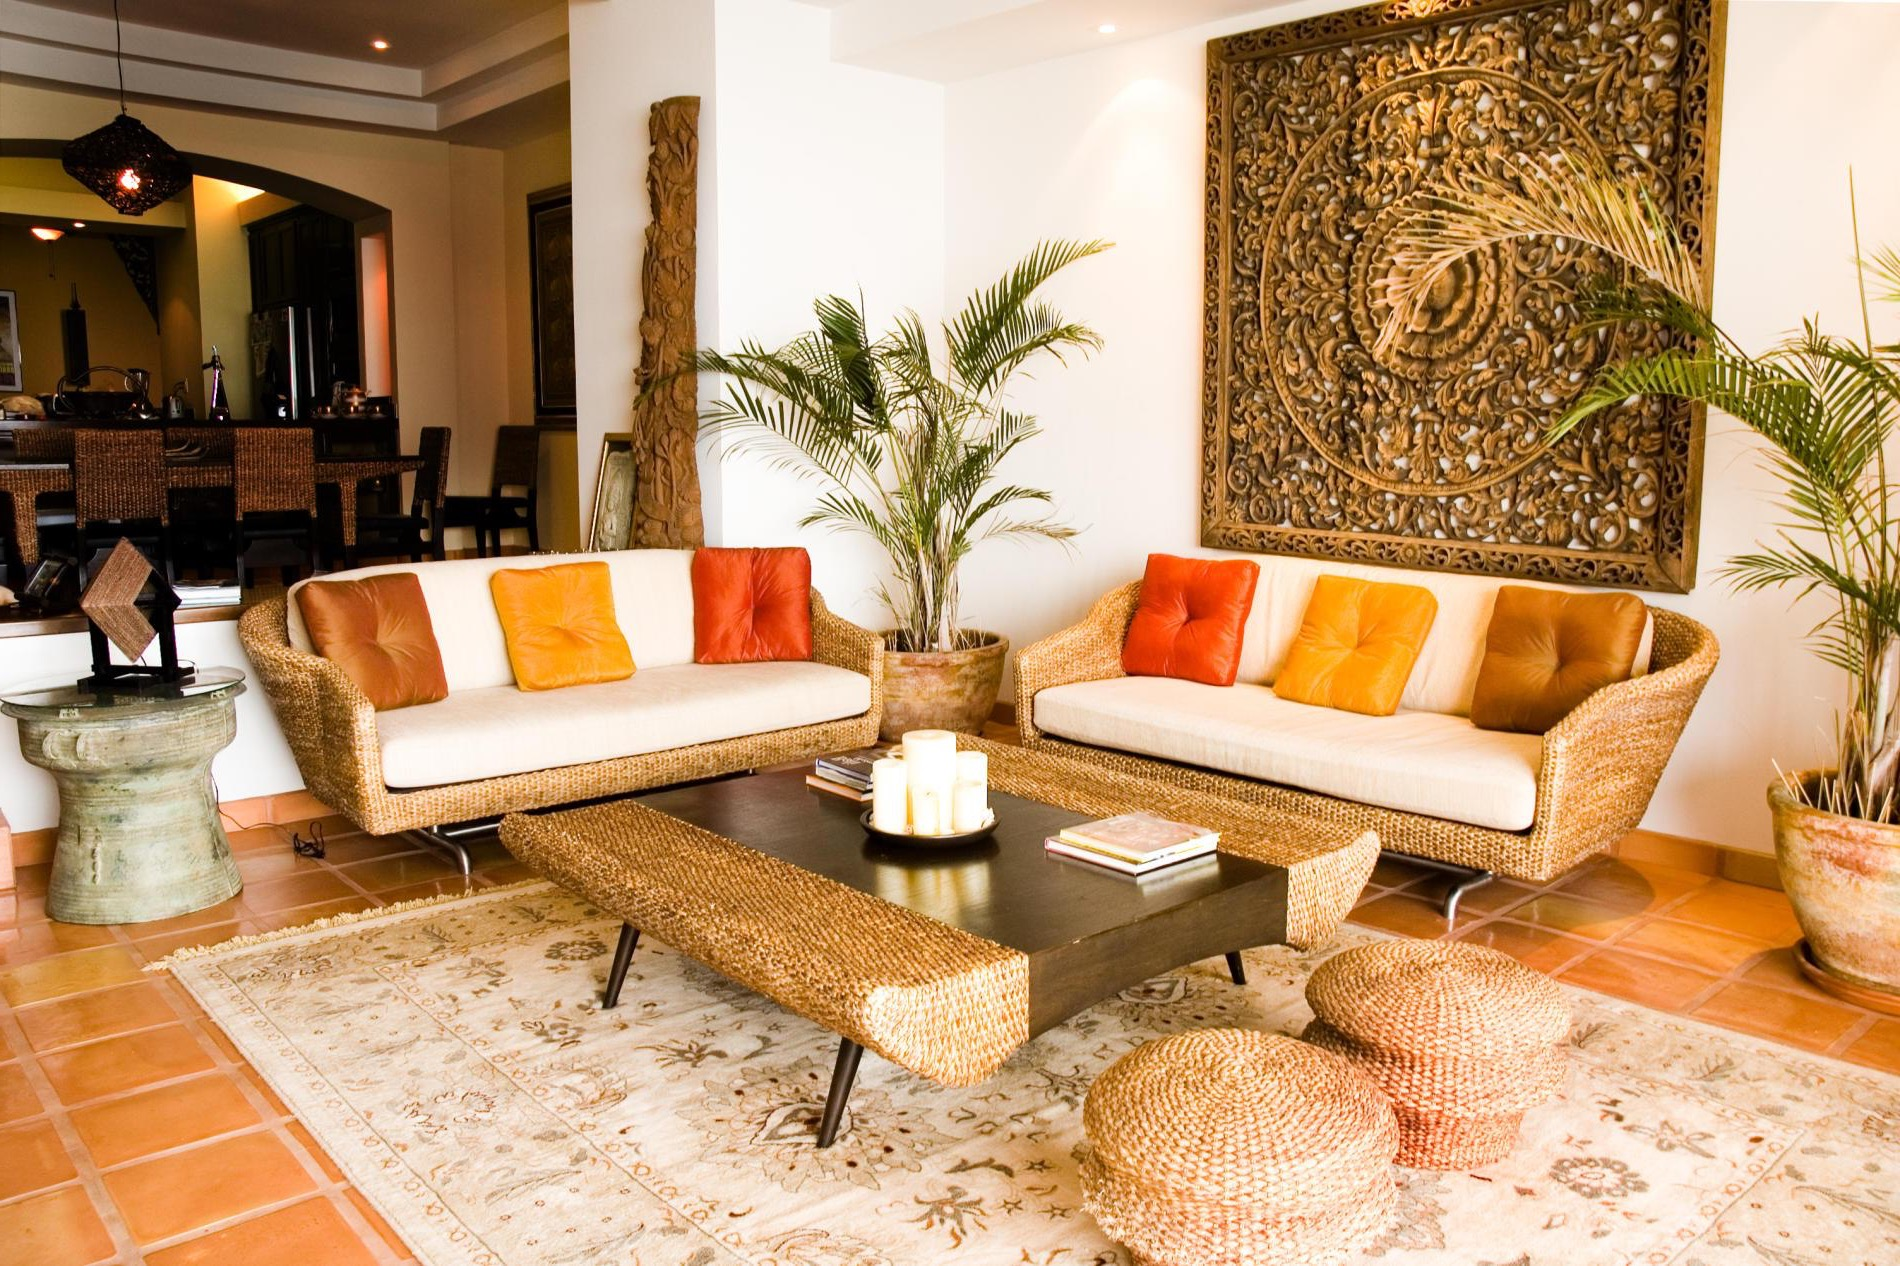 Indian Living Room Ideas Indian Living Room Interior Decoration 14401 Living